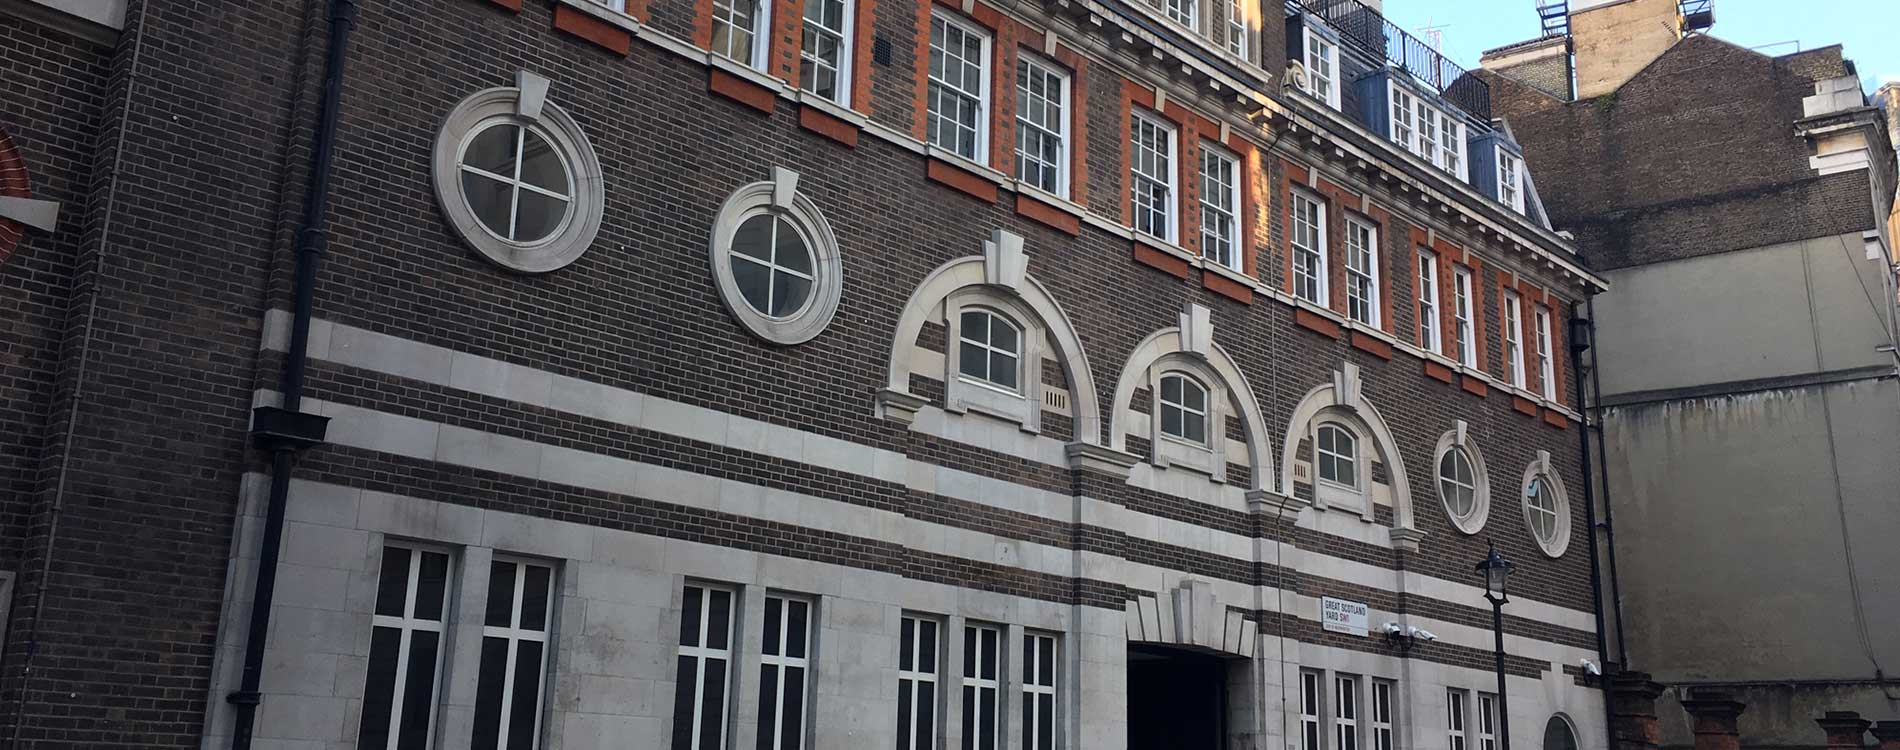 Scotland yard heritage project front façade after roof renewal